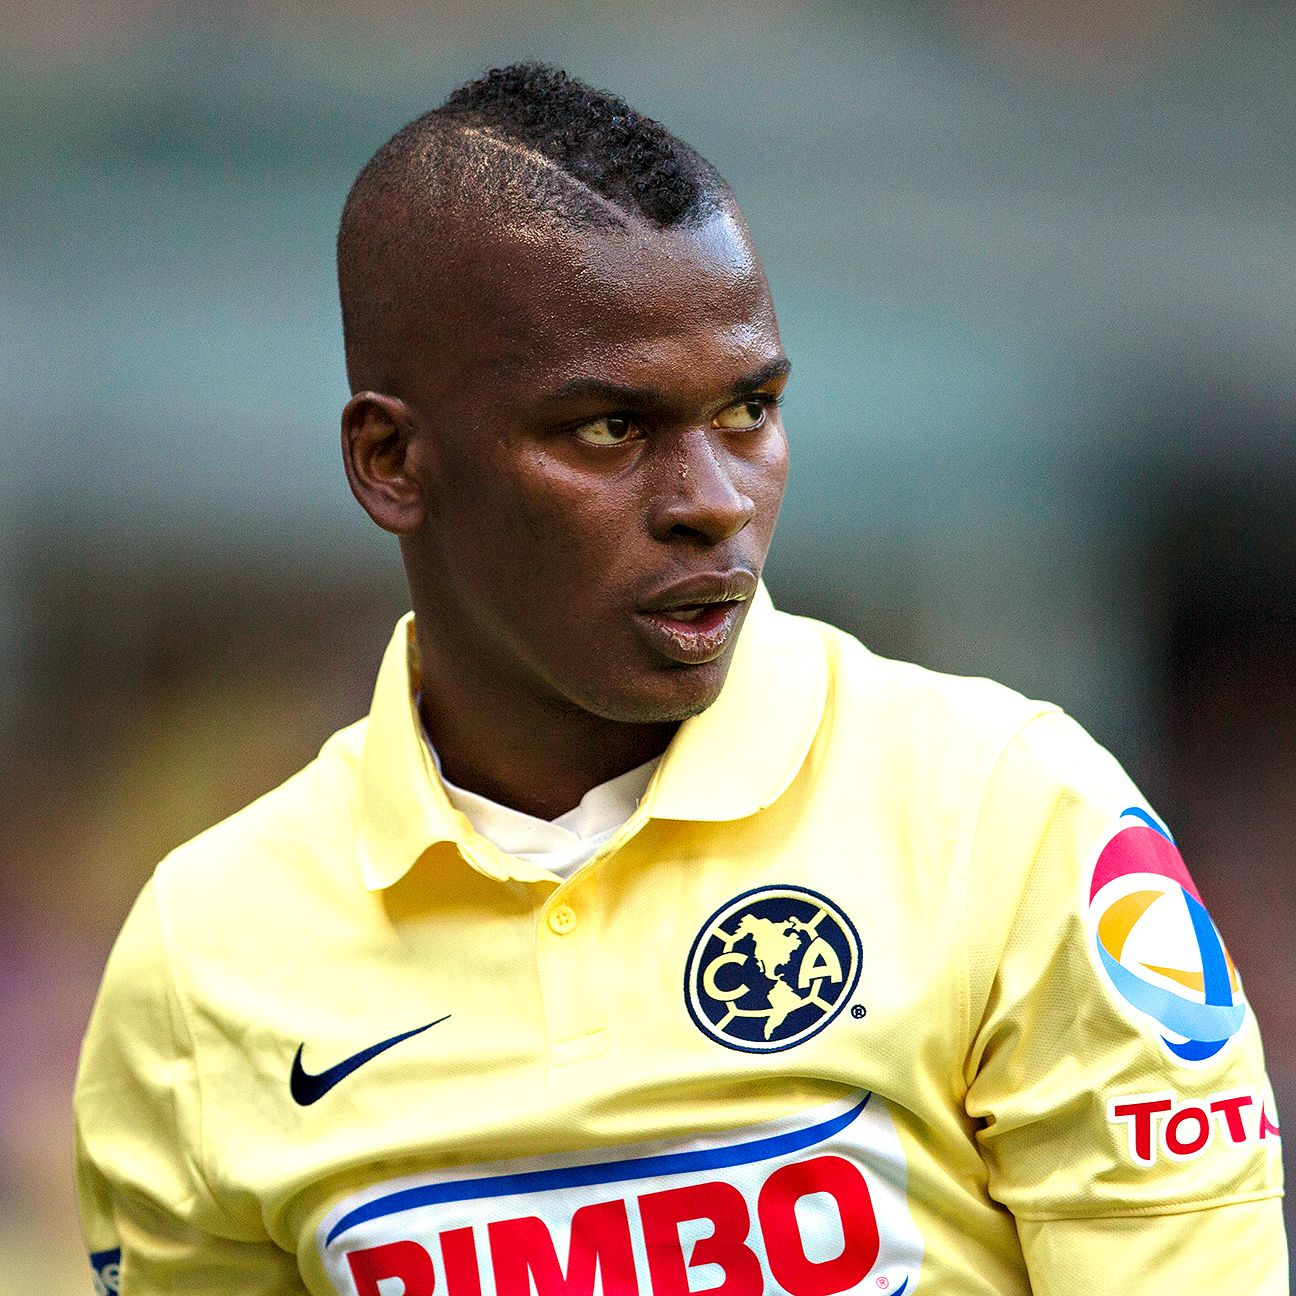 Darwin Quintero made sure Club America maintained their winning ways against Toluca.